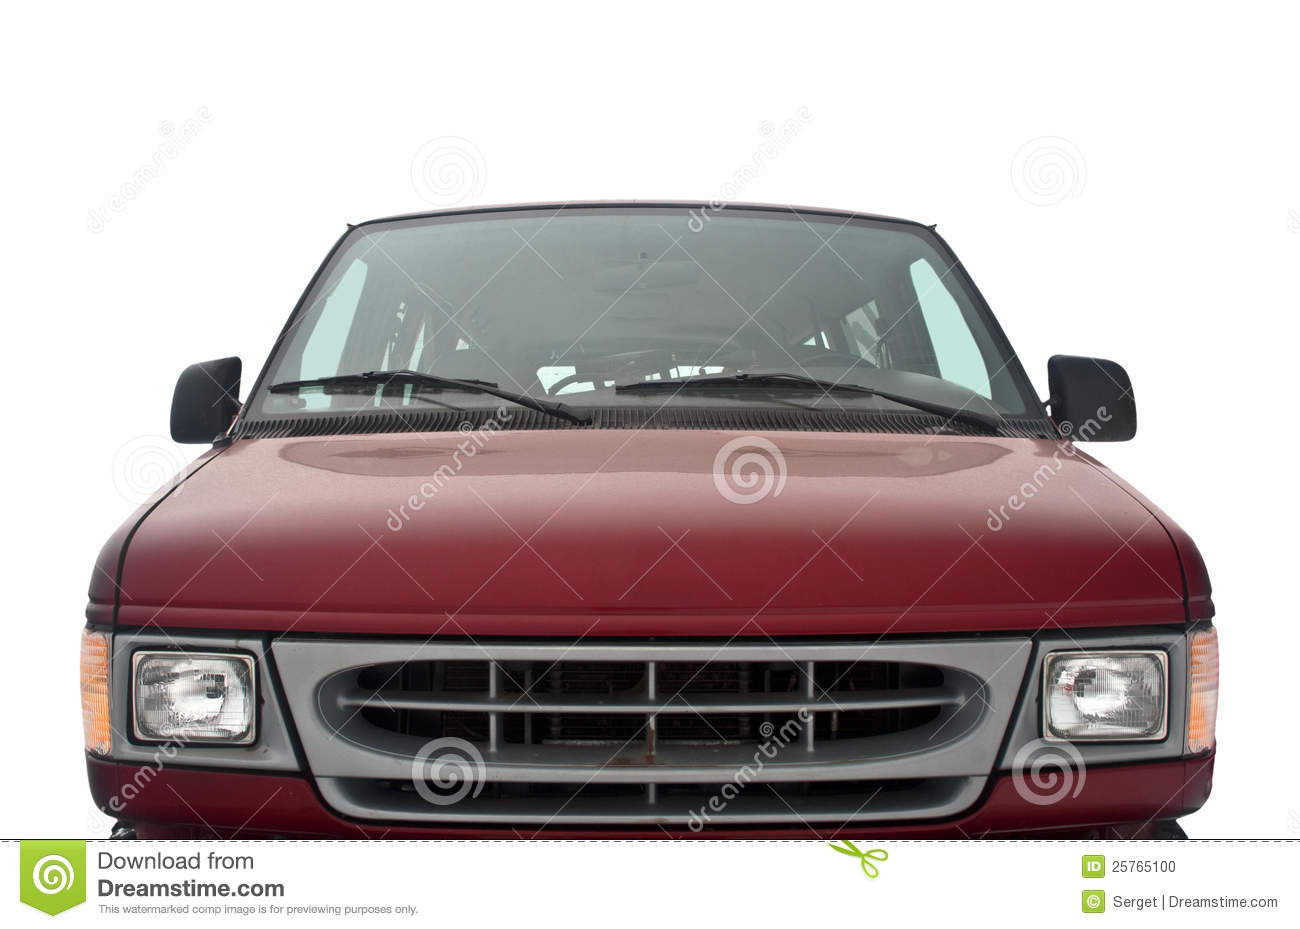 Front side of a red van on white background